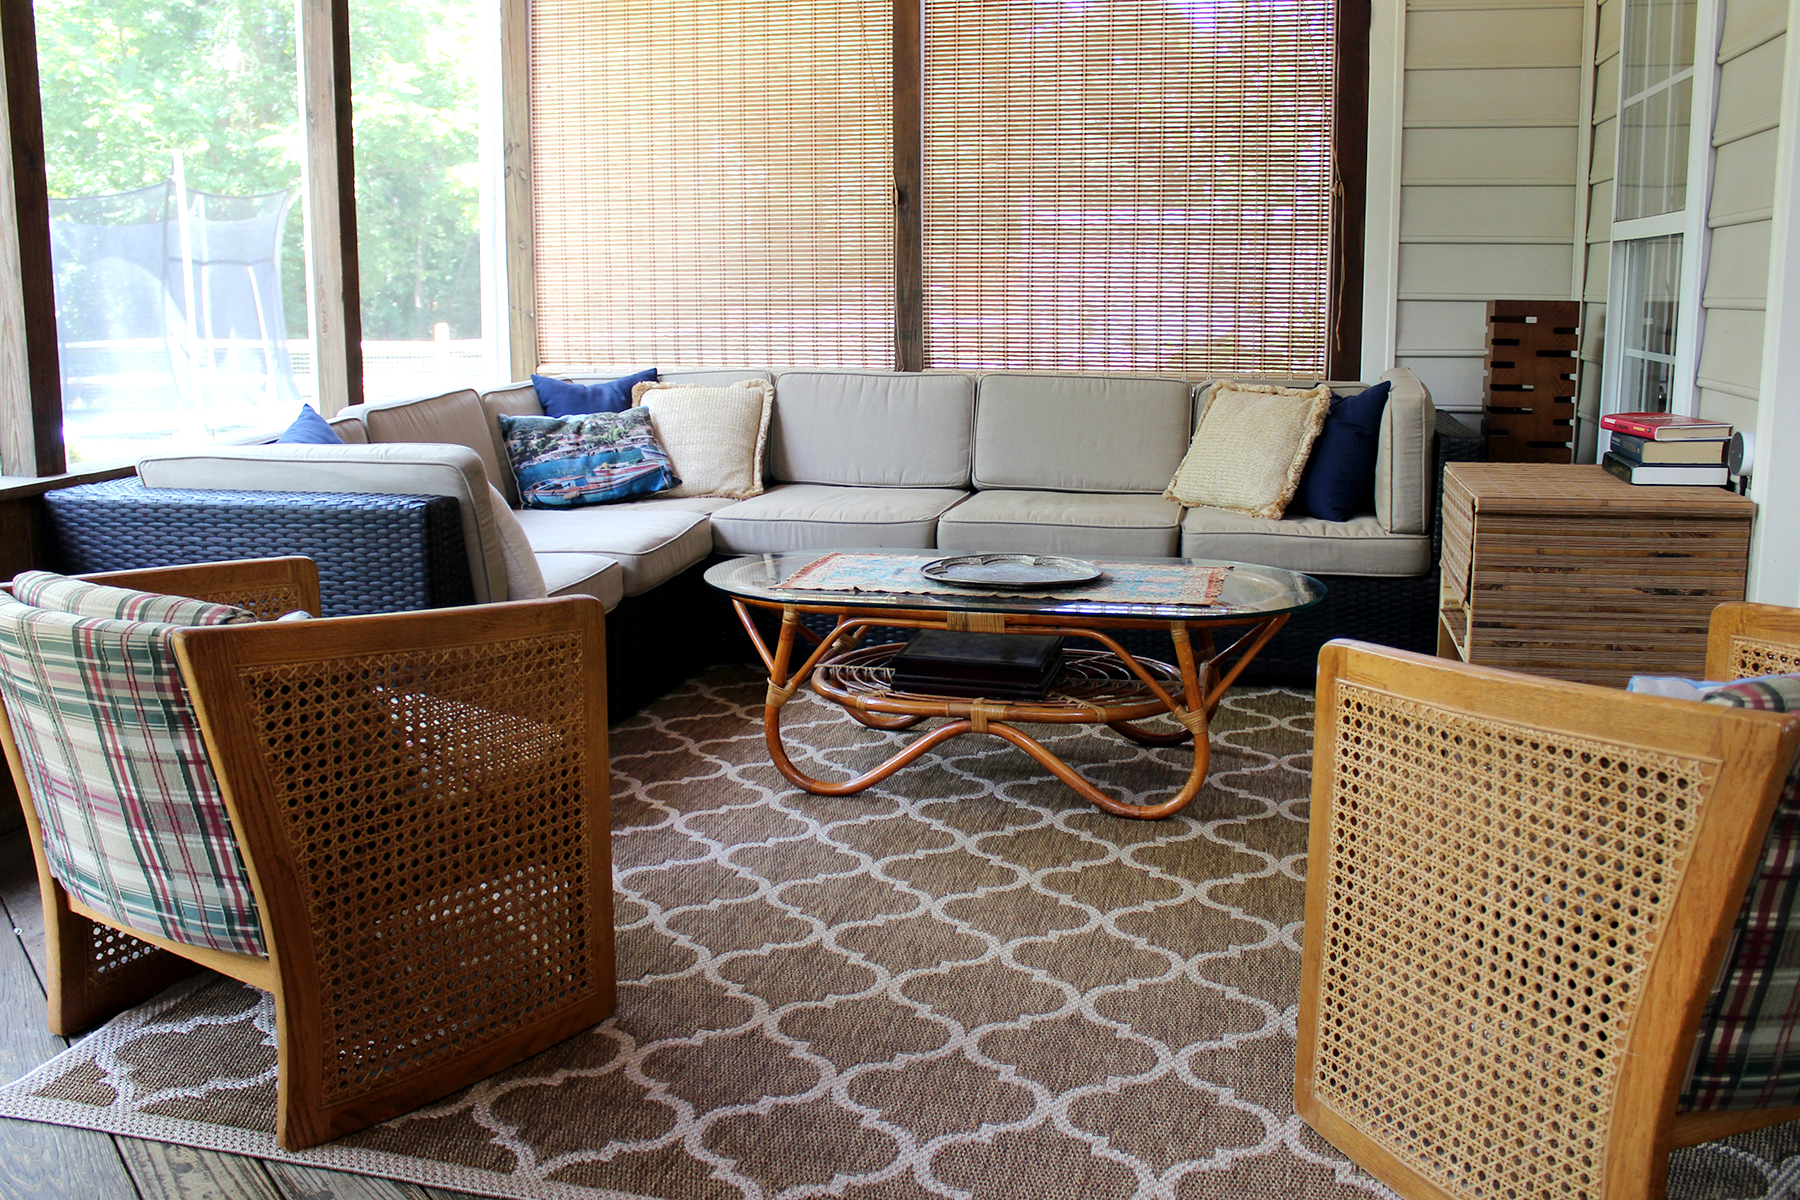 A Screened Porch on a Budget // tips for decorating a porch using thrifted furniture